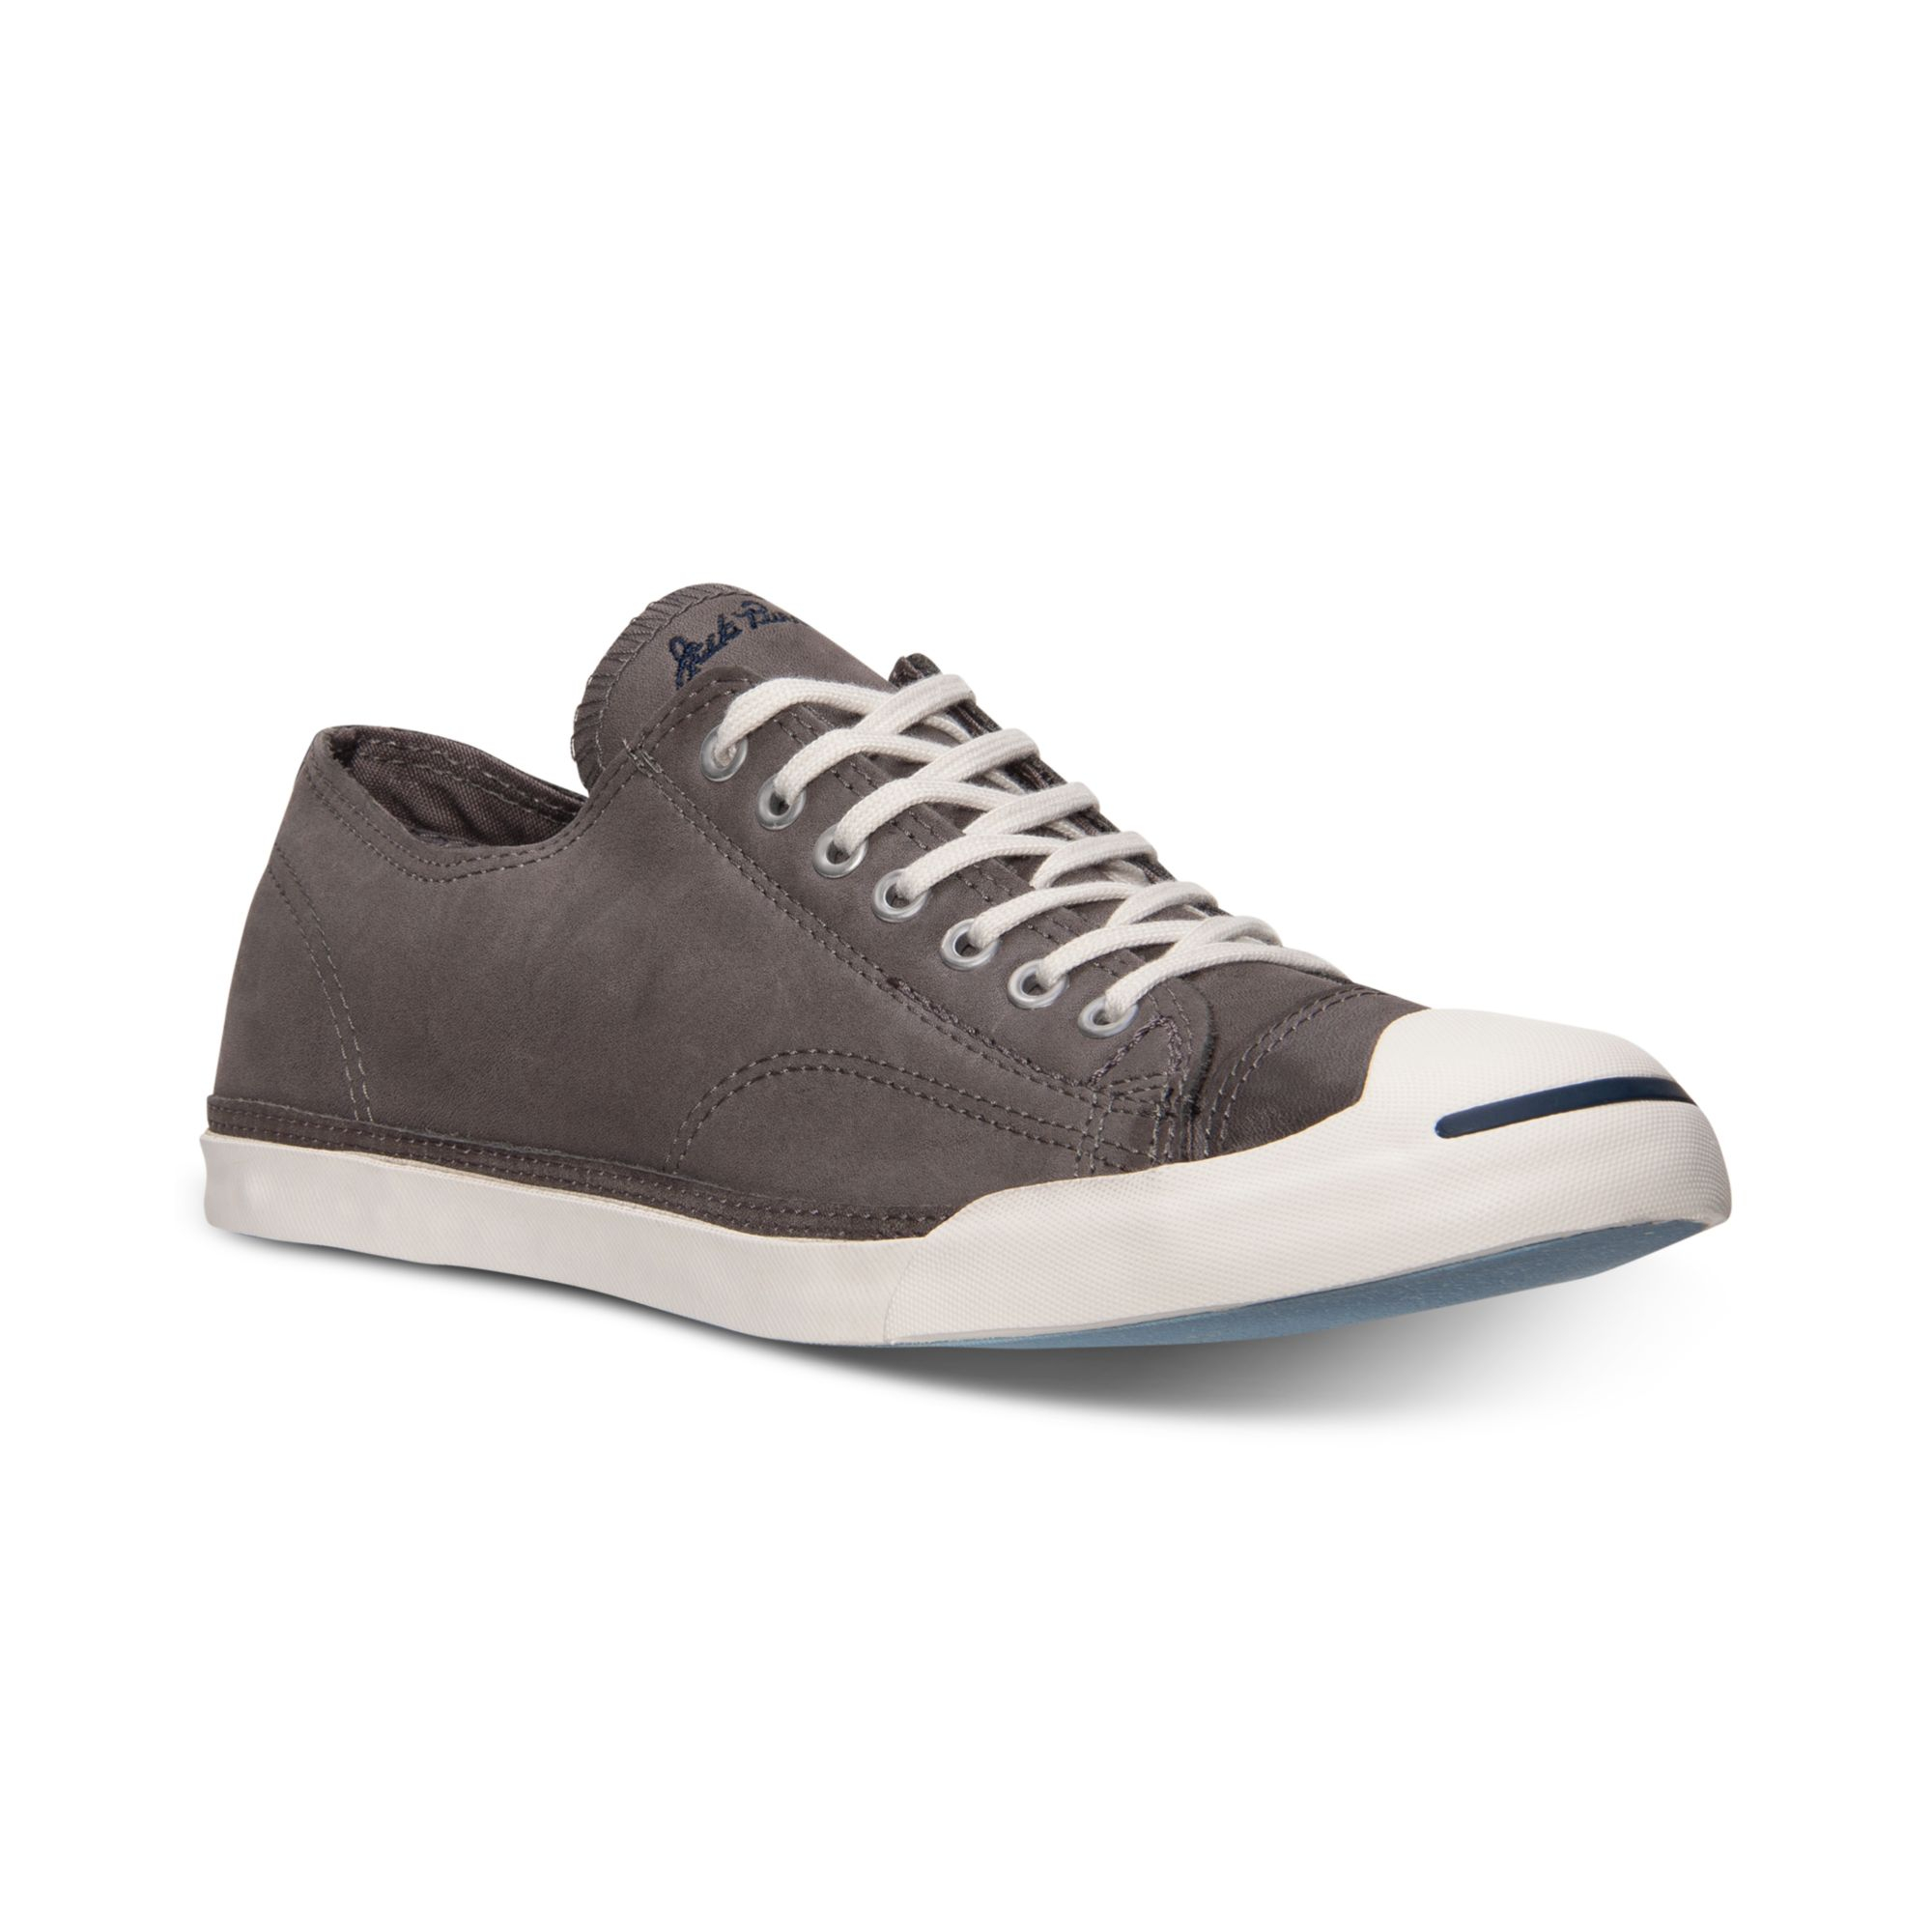 9b0294008af9 Lyst - Converse Mens Jack Purcell Lp Casual Sneakers From Finish ...